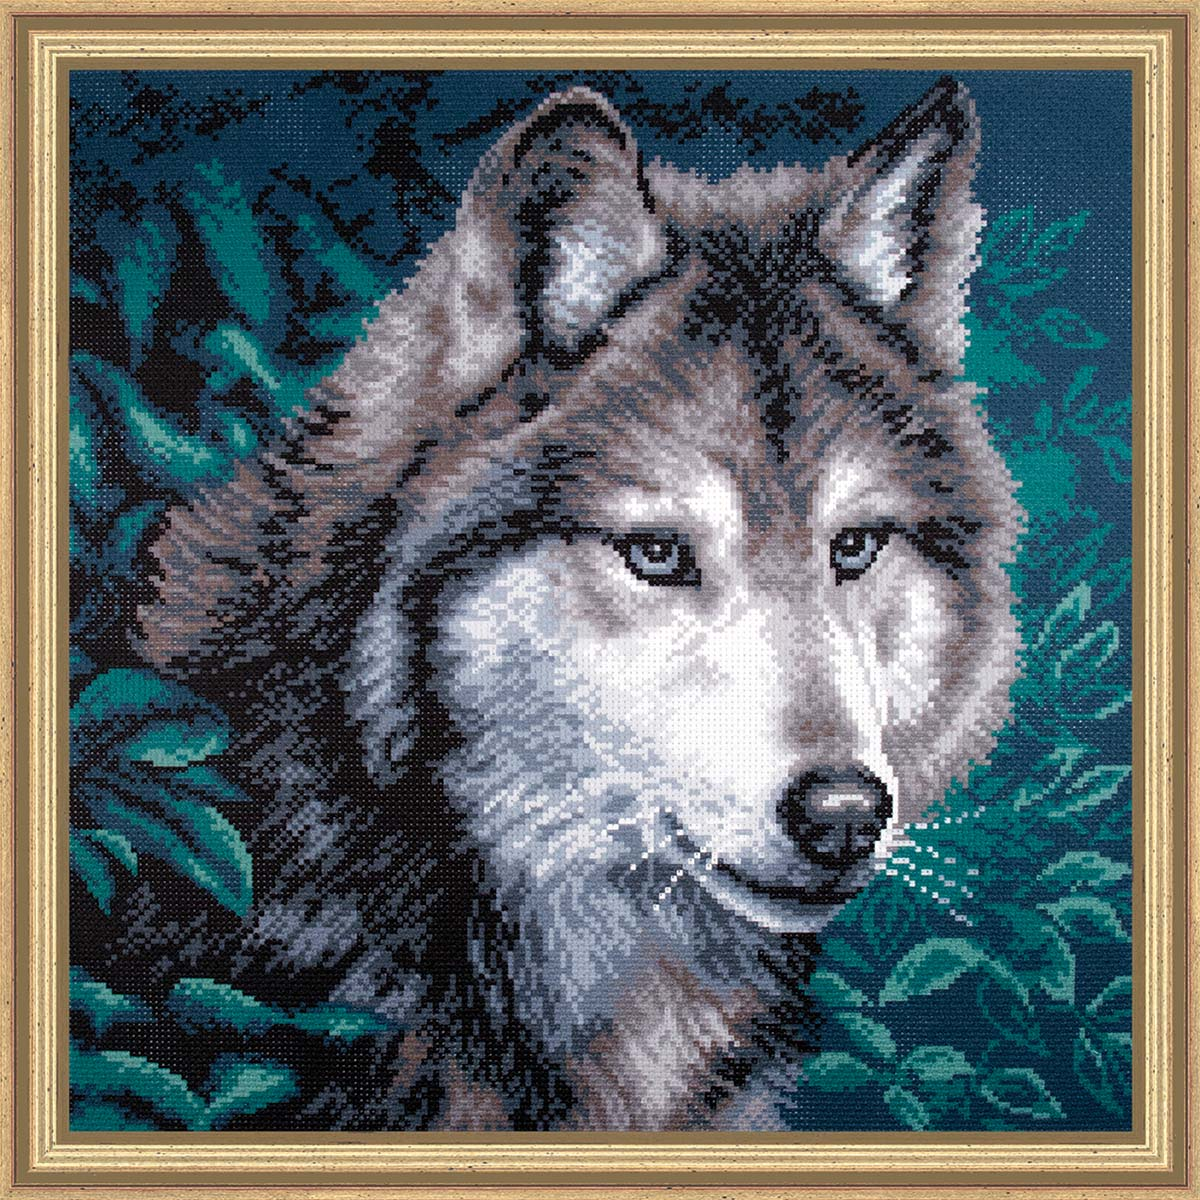 Collection D'Art Gray Wolf Stamped Cross-Stitch Kit